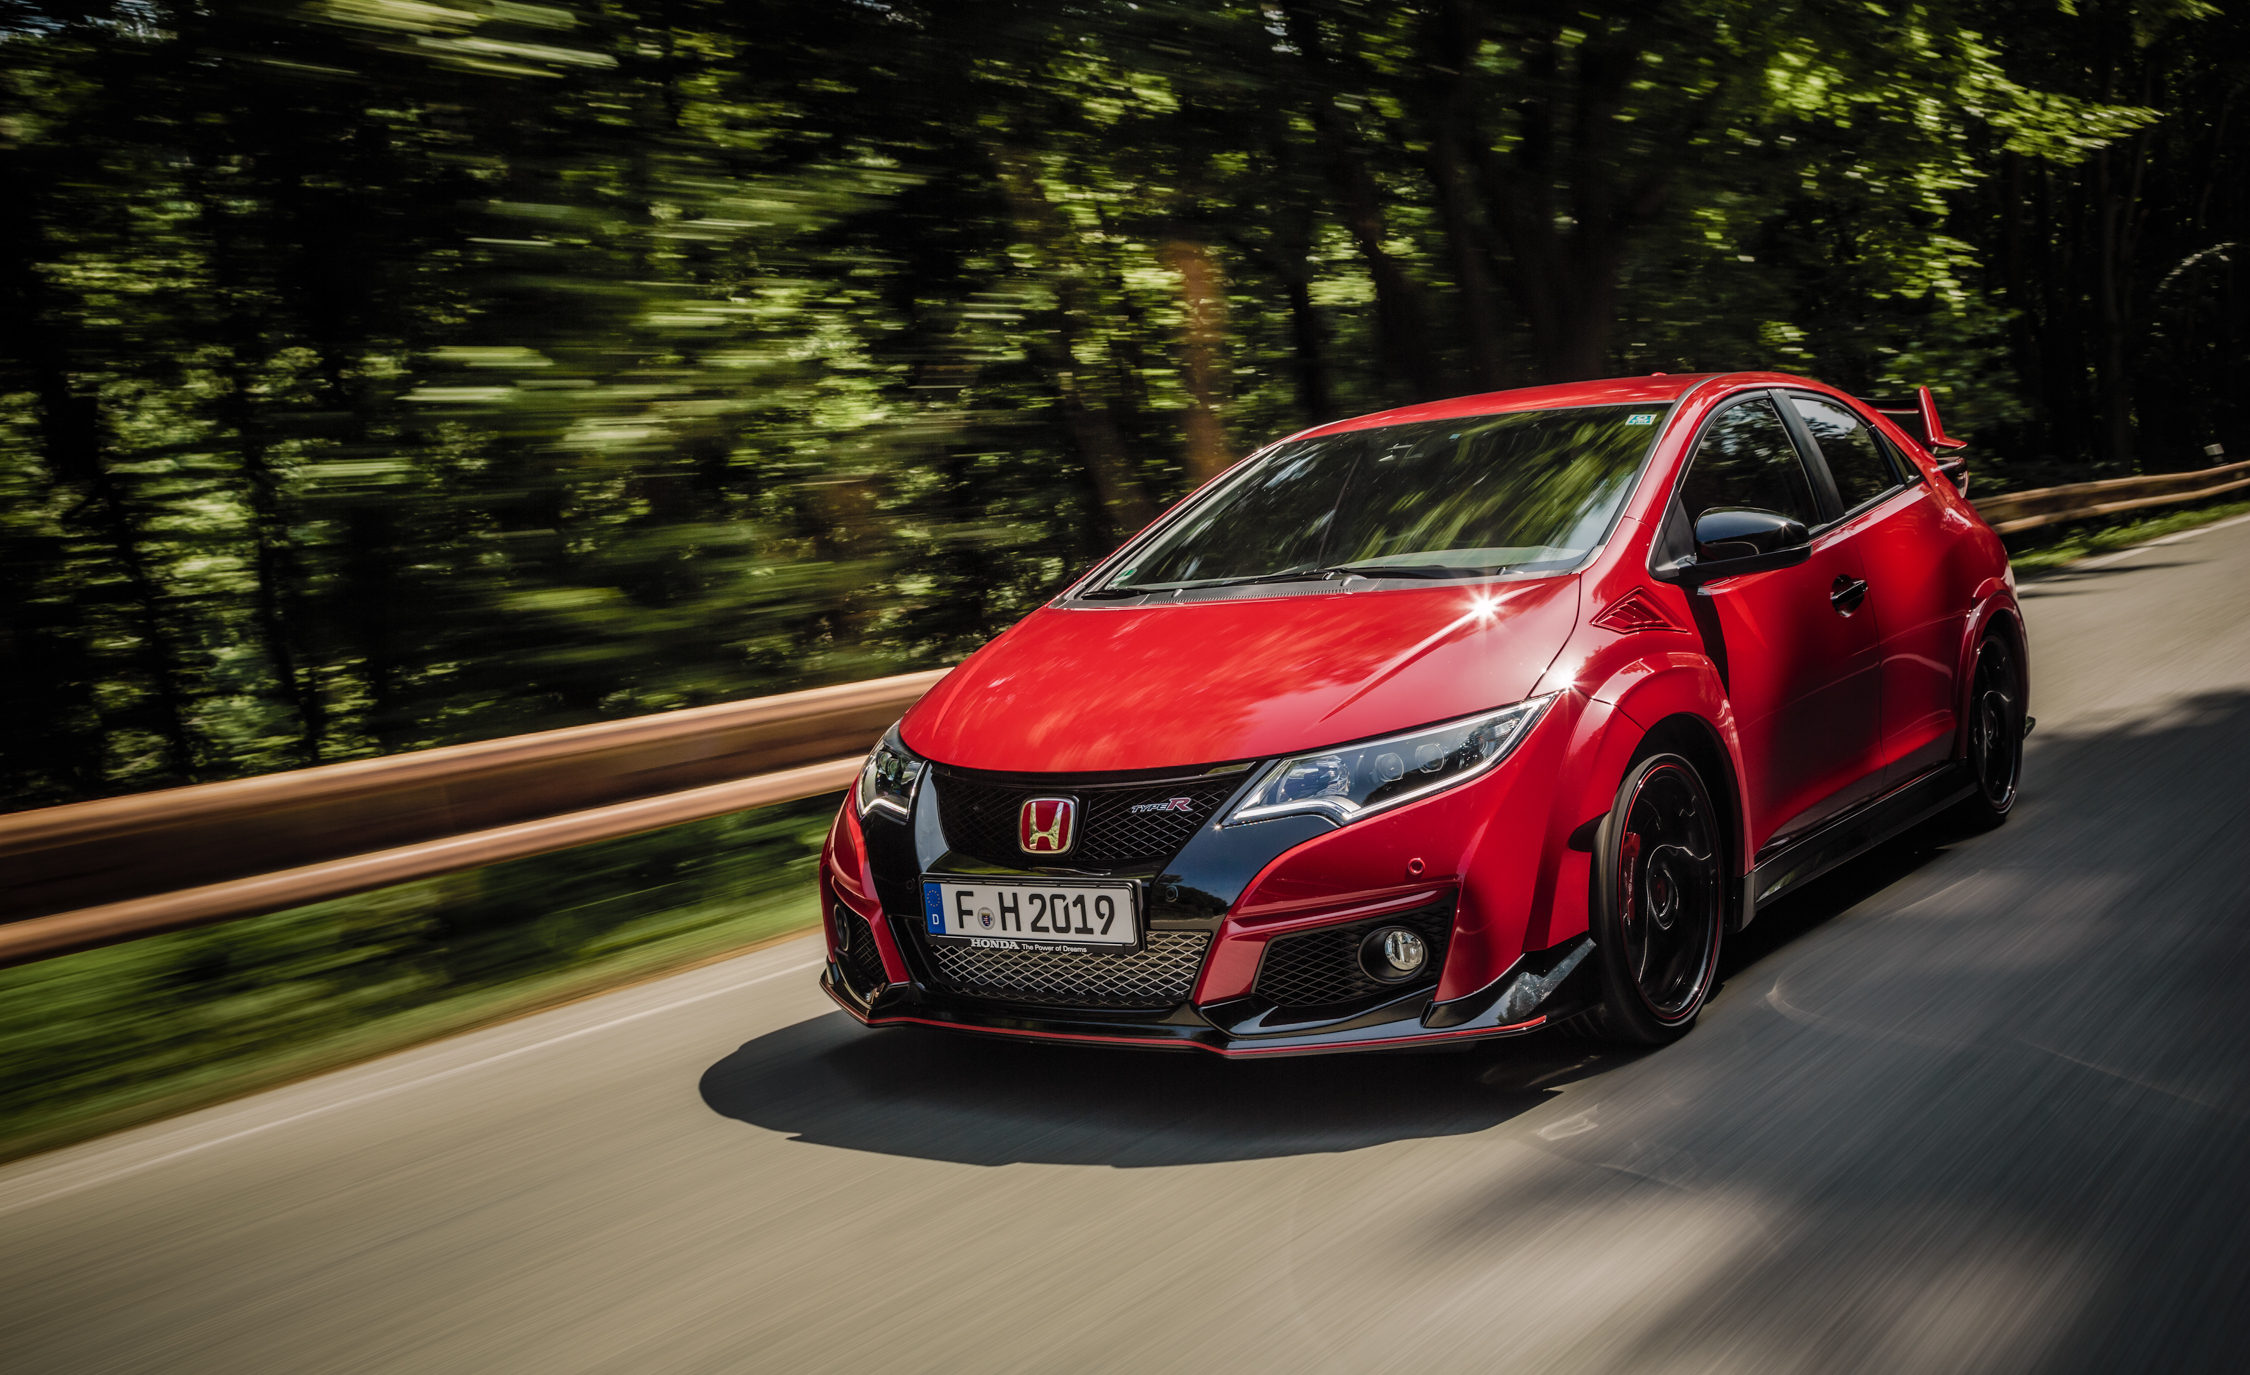 2015 Honda Civic Type R Pictures Gallery (34 Images)